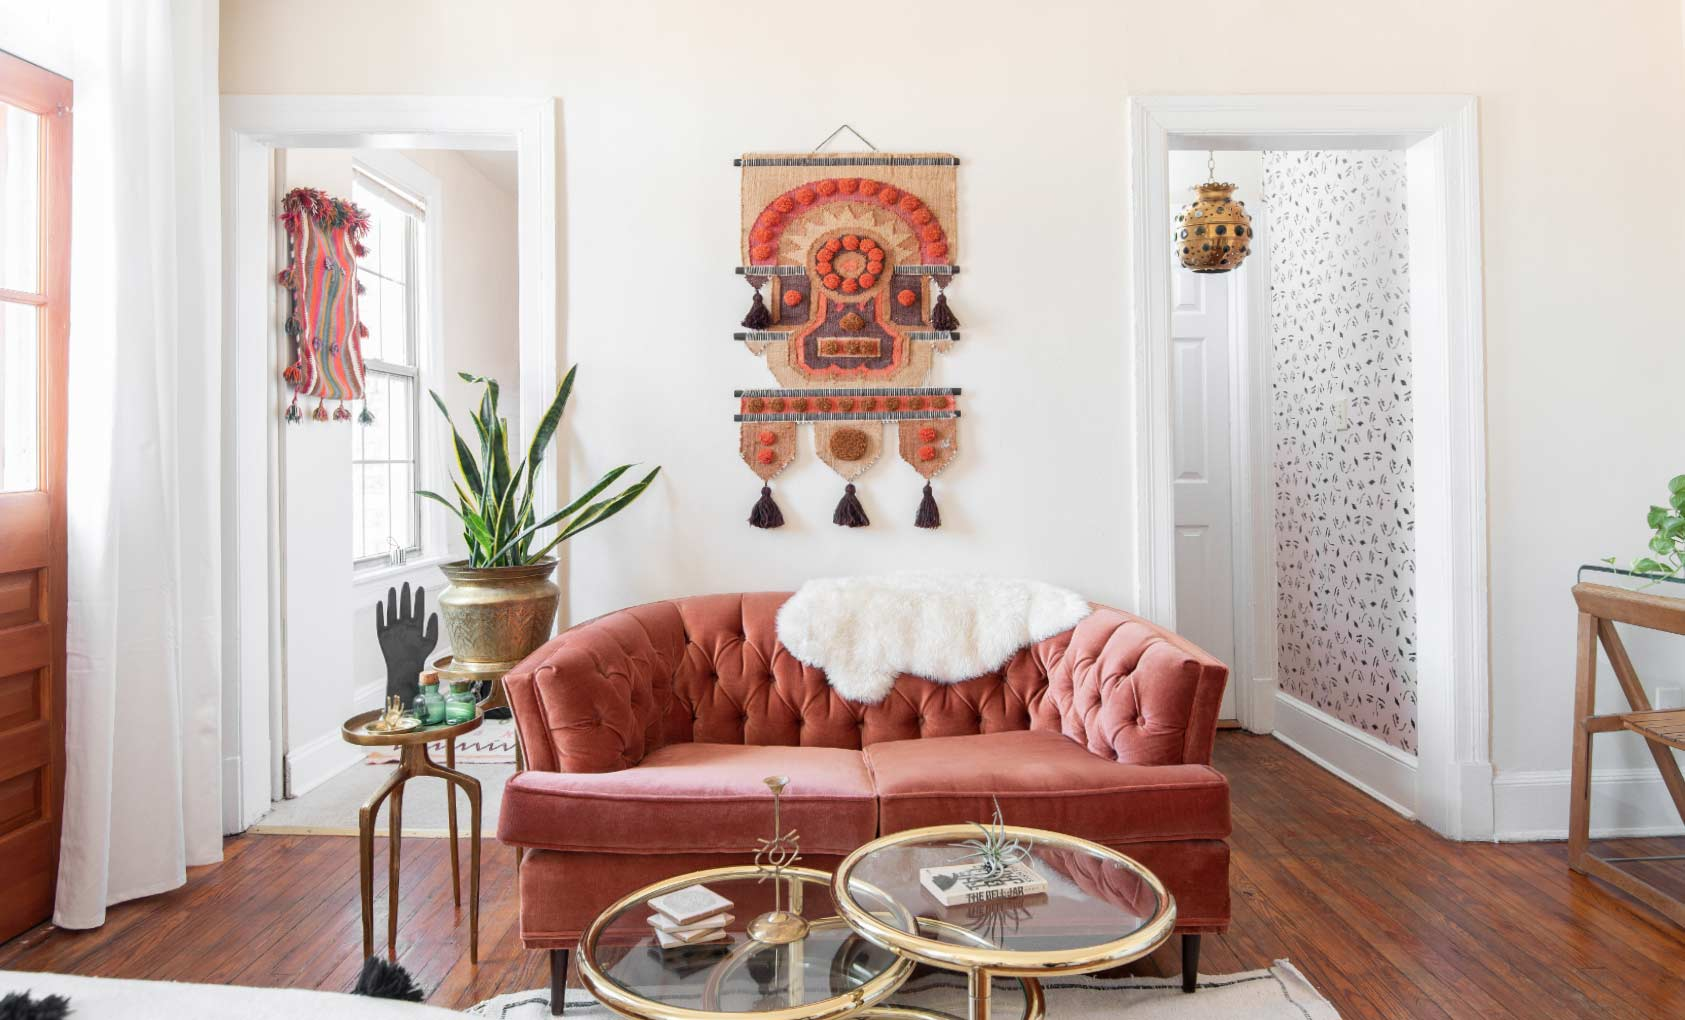 Living & Working in 350 Square Feet, Design*Sponge